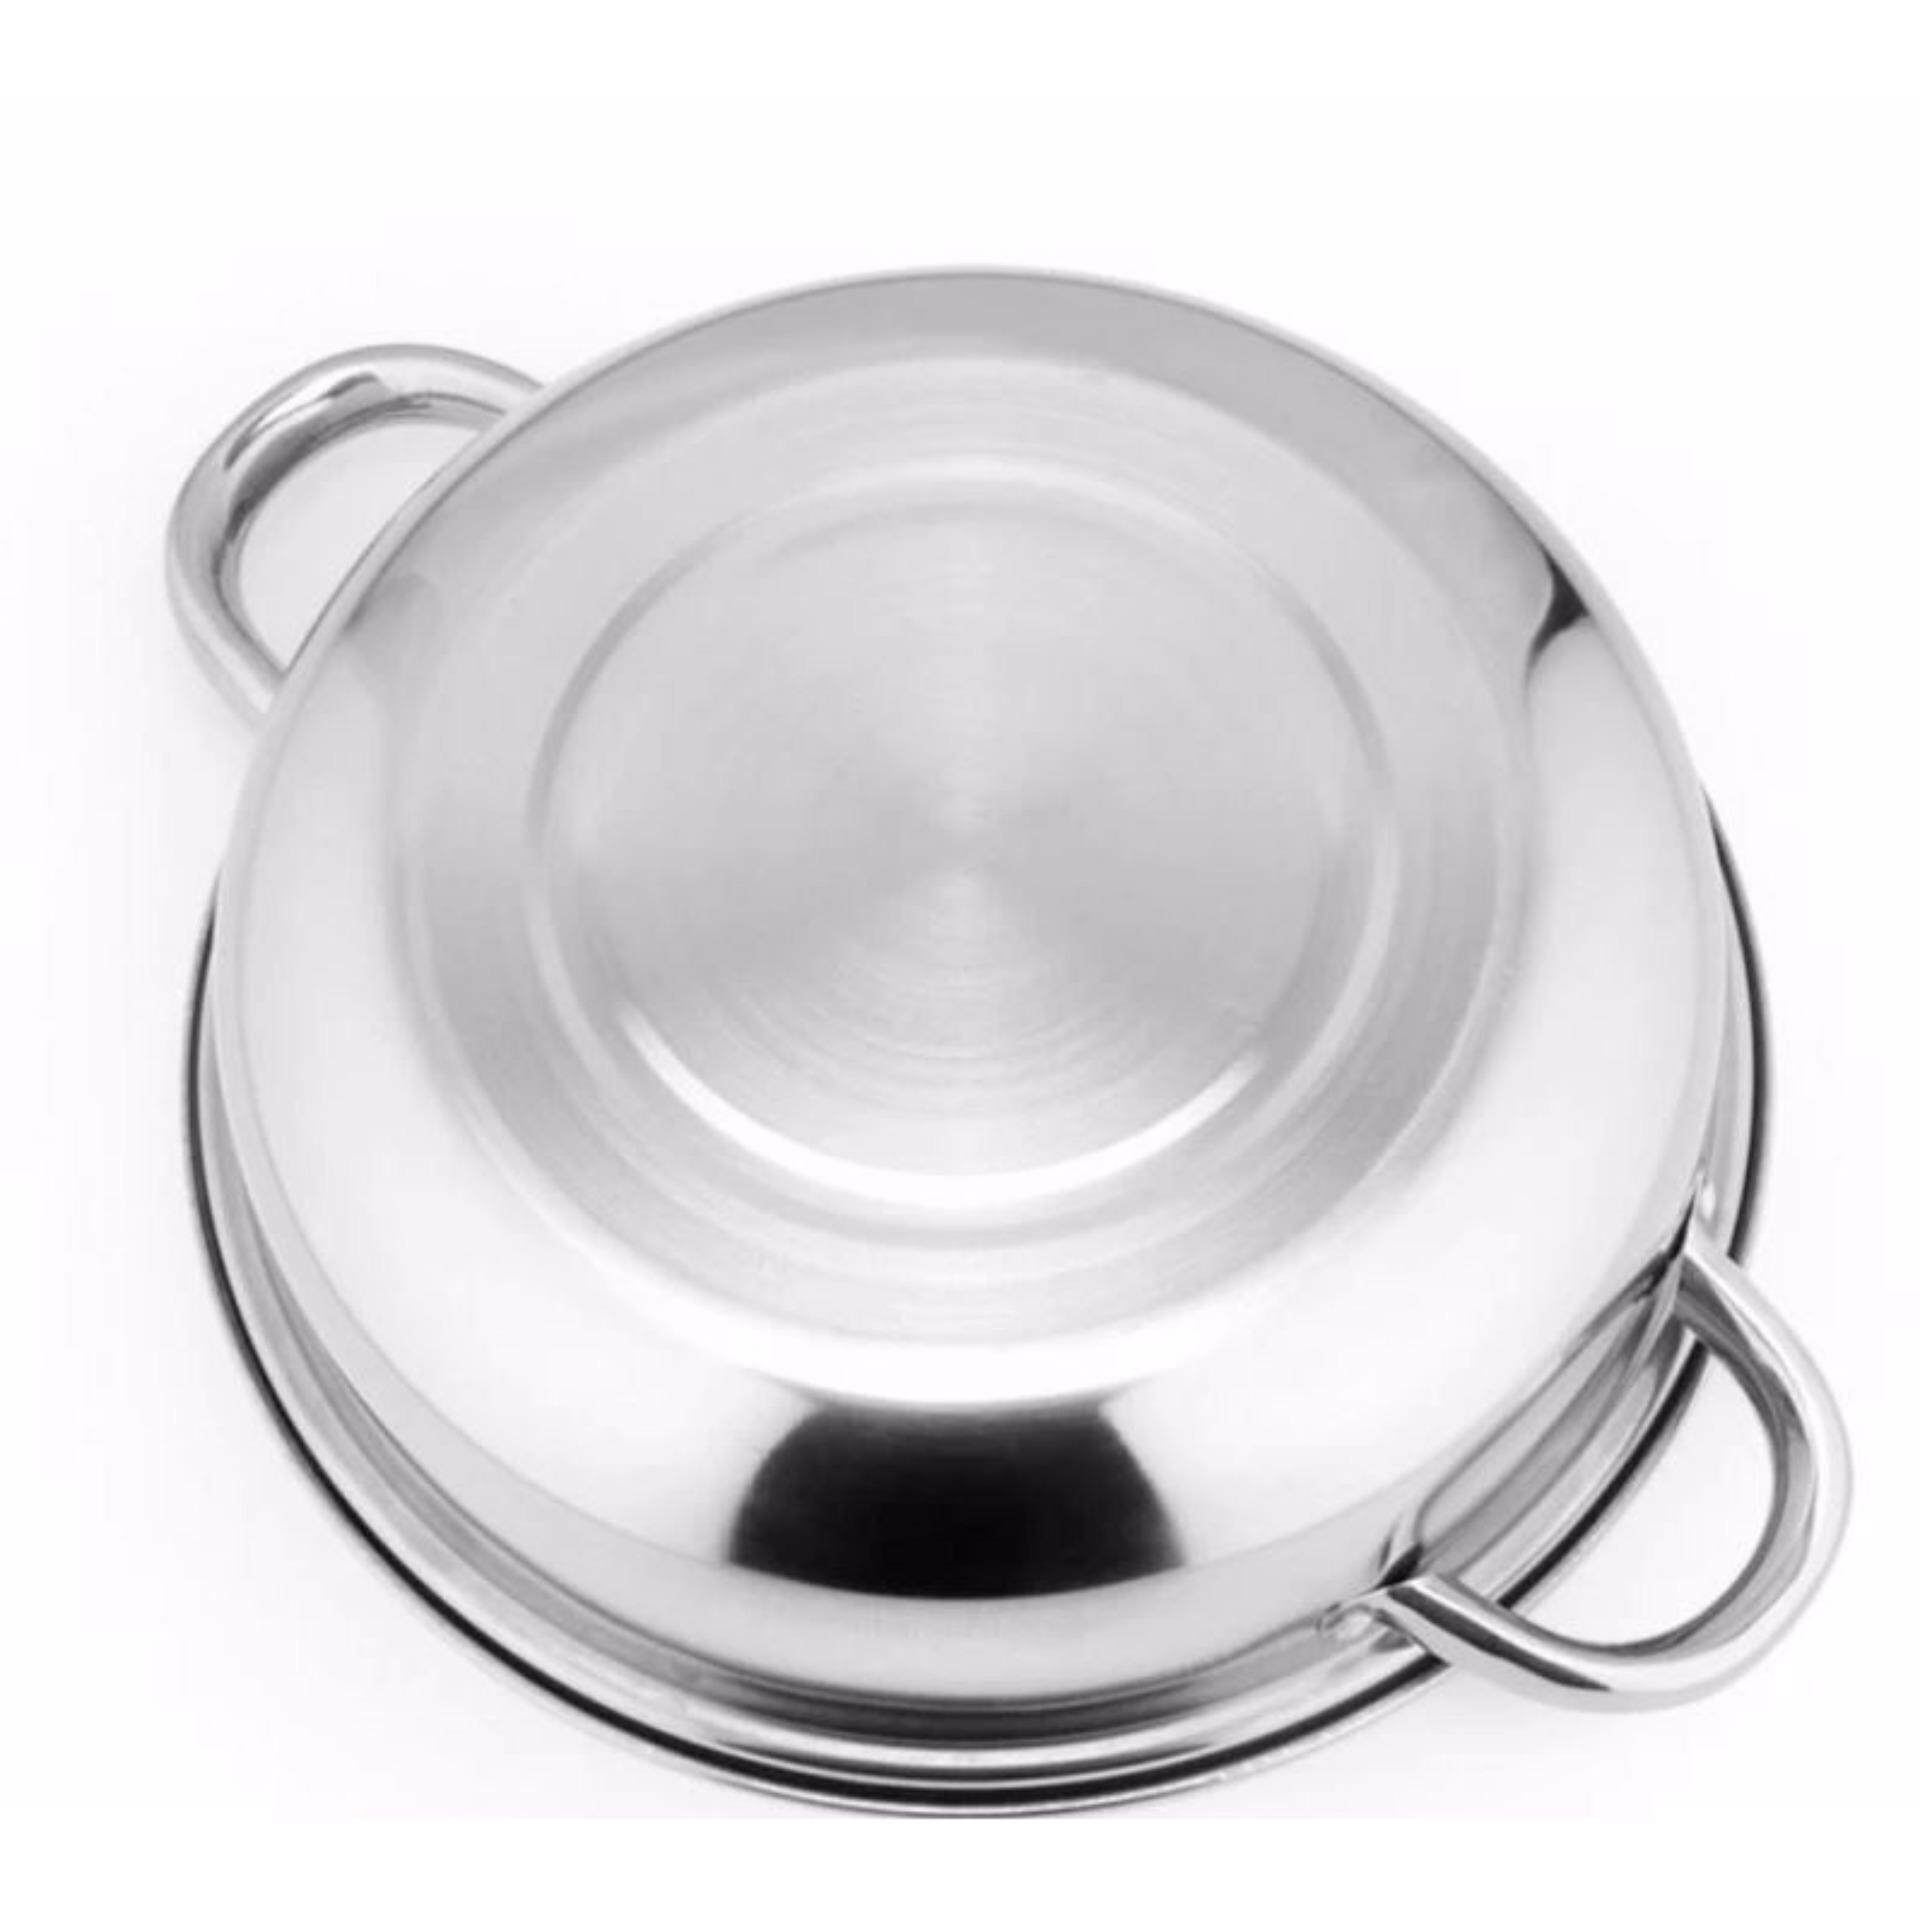 Luxury Soup Steam Pot 28-cm High Quality Stainless Steel Pot - Good Quality Soup Steam Boil Pot 28-cm High Quality Stainless Steel Pot Steamboat Healthy Cooking 2 layers thick stainless steel